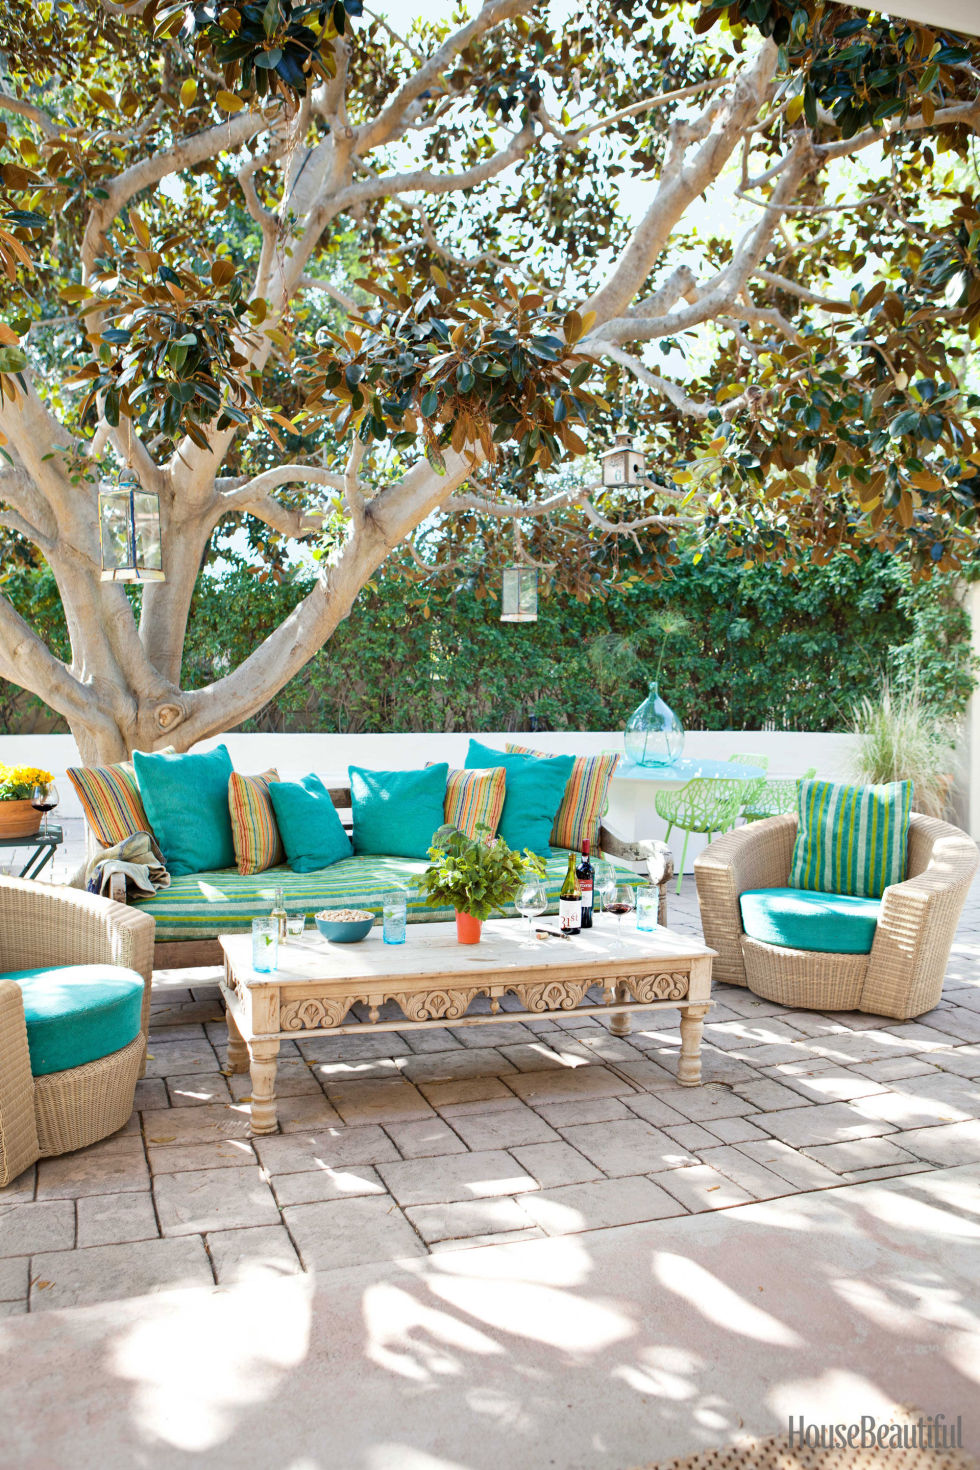 85 patio and outdoor room design ideas and photos - Backyard Patio Decorating Ideas